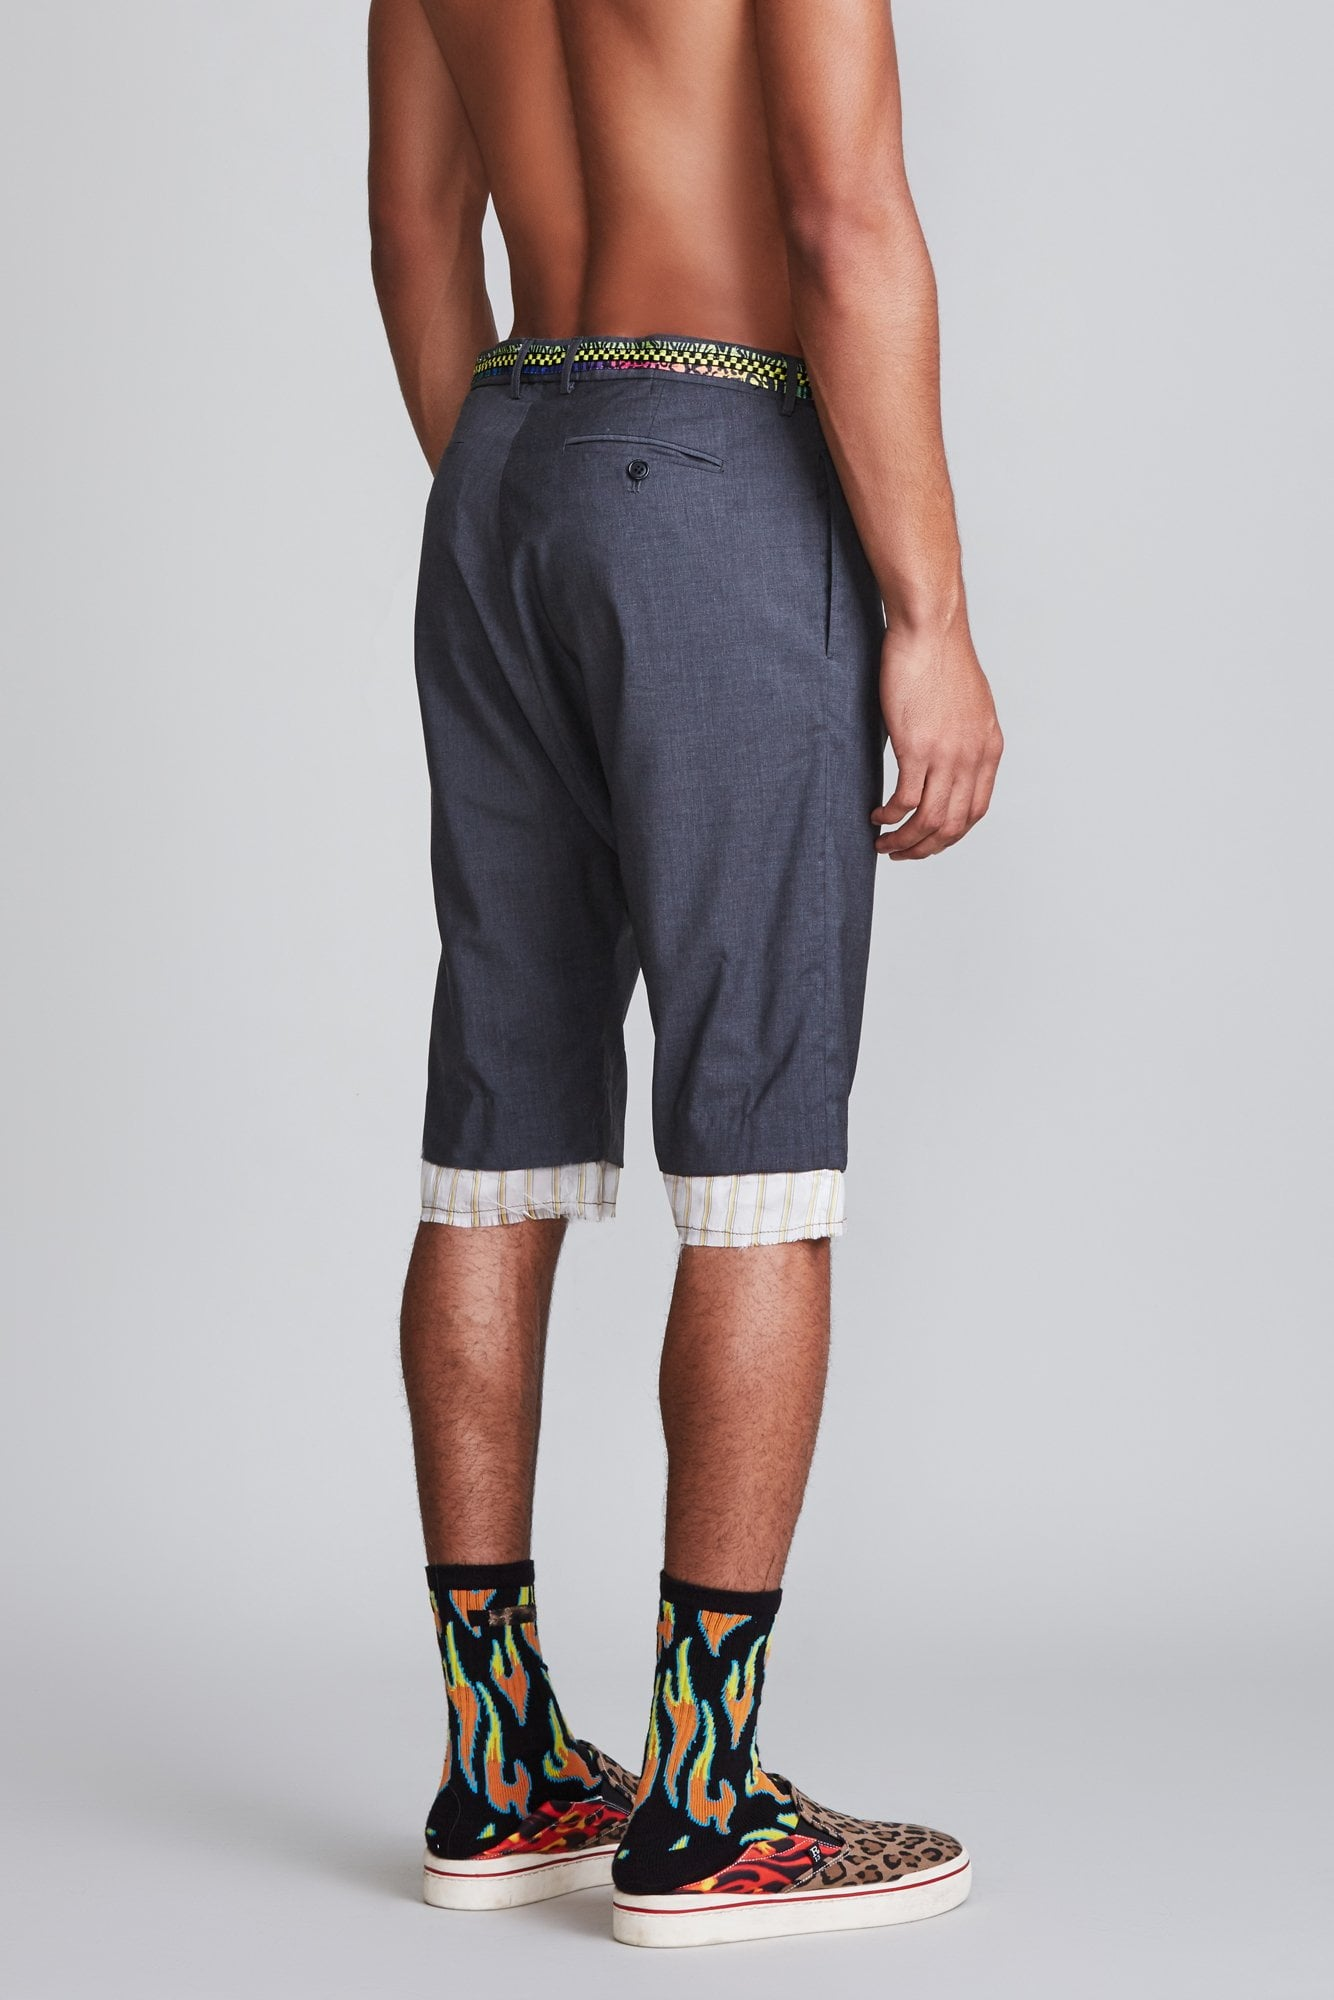 Drop Crotch Short with Shoelace Belt - Charcoal